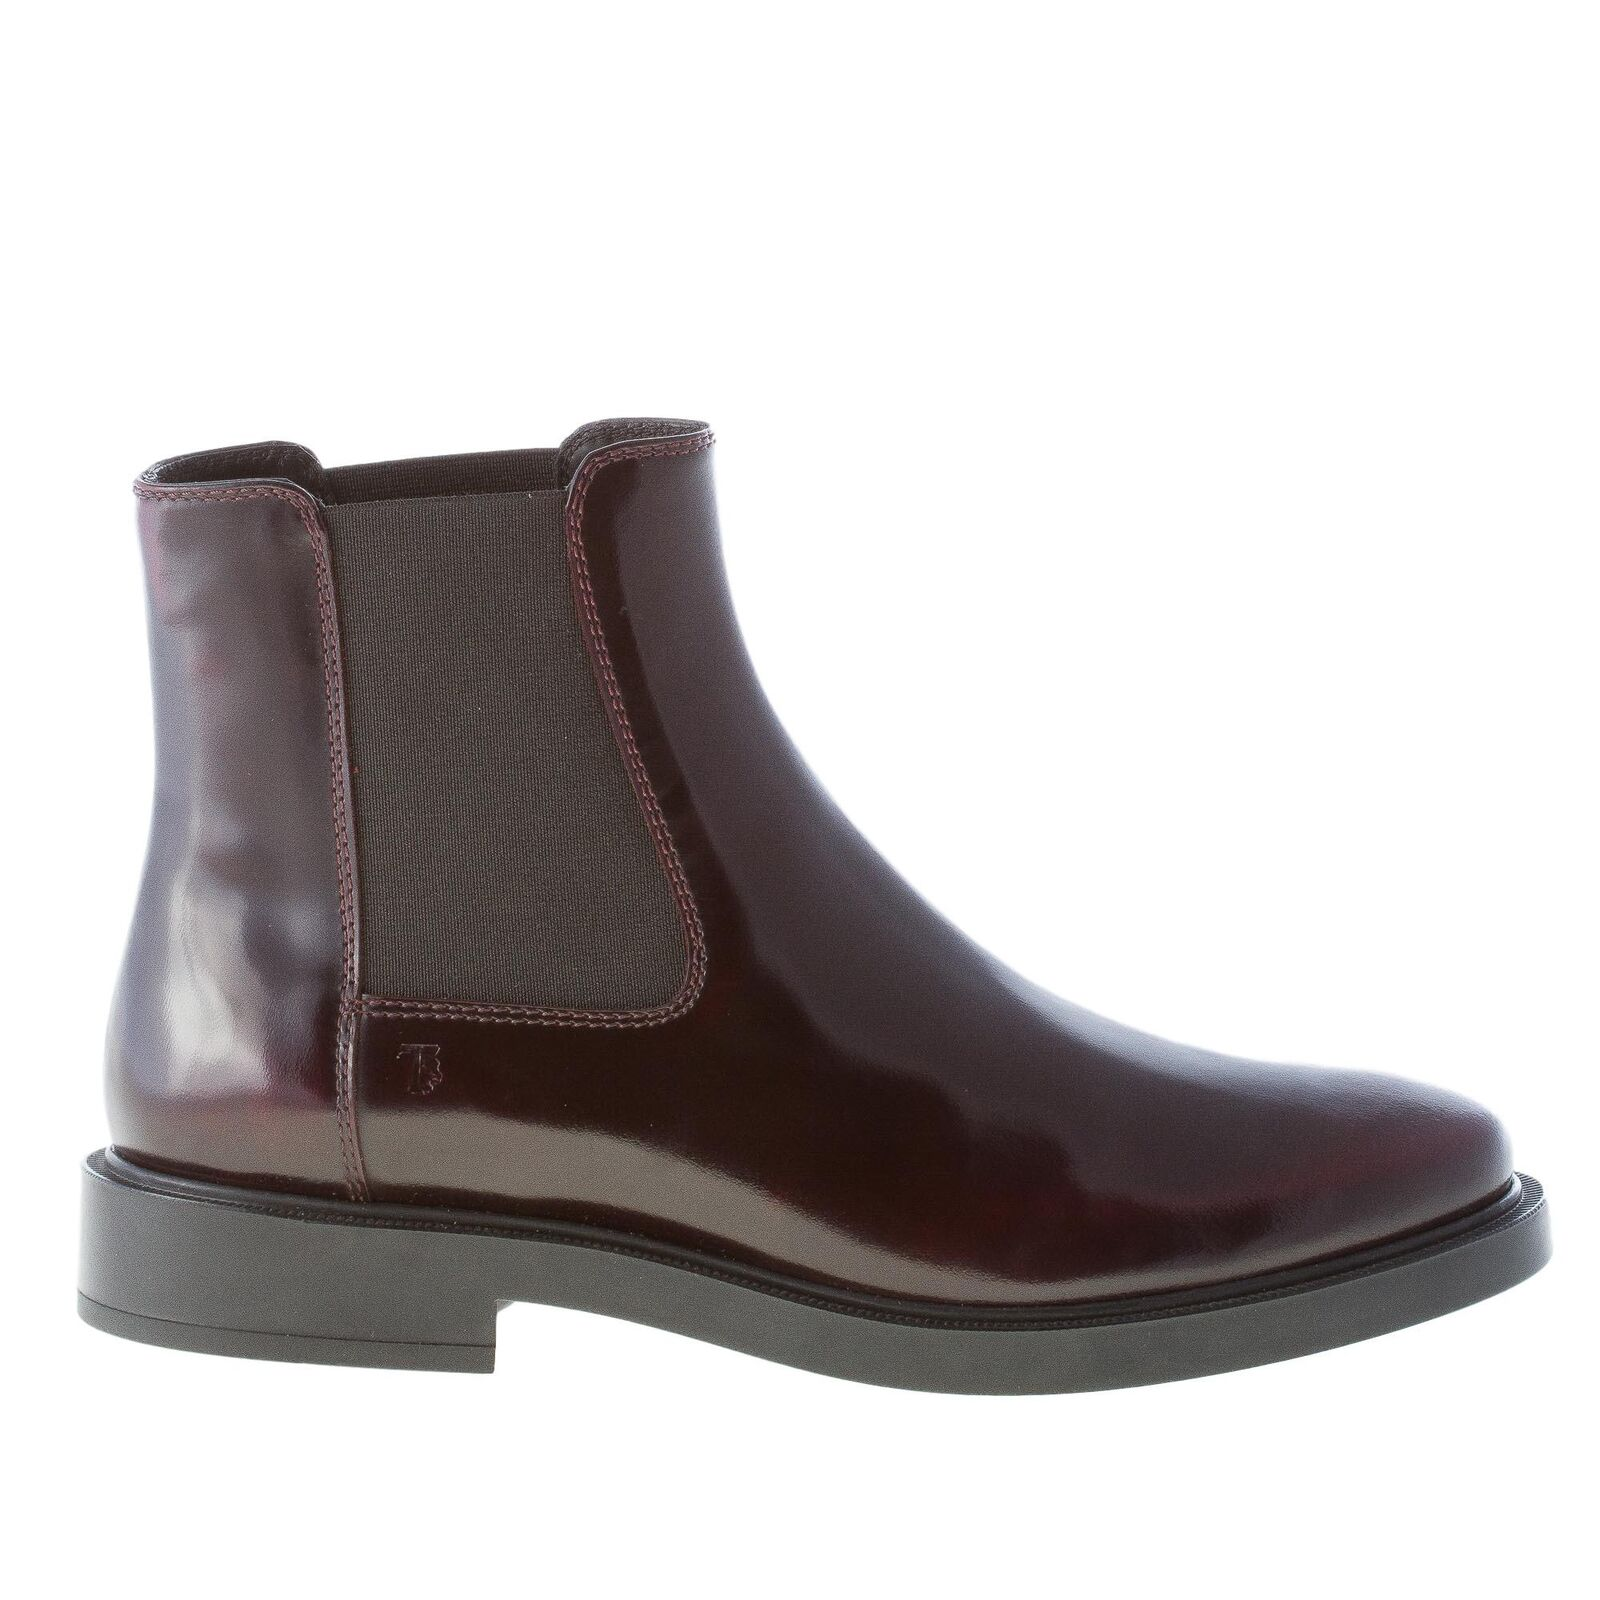 TOD'S women leather shoes Bordeaux smooth leather women Chelsea boot XXW0ZP0V830AKTR802 edb842